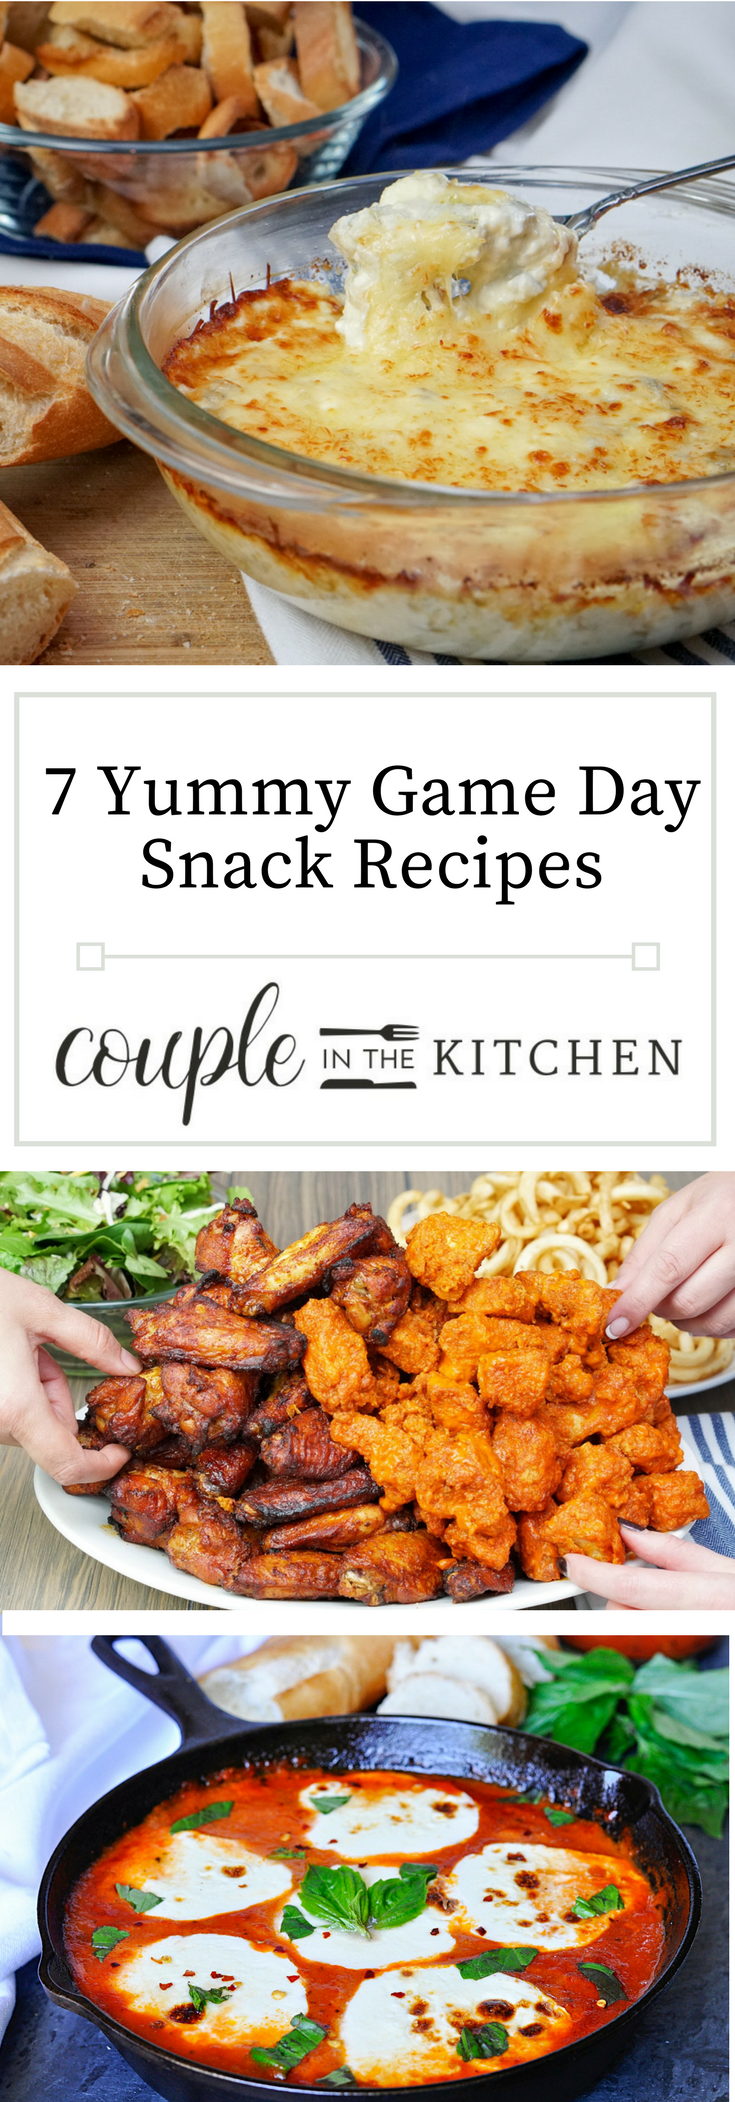 7 Yummy Game Day Snack Recipes | coupleinthekitchen.com